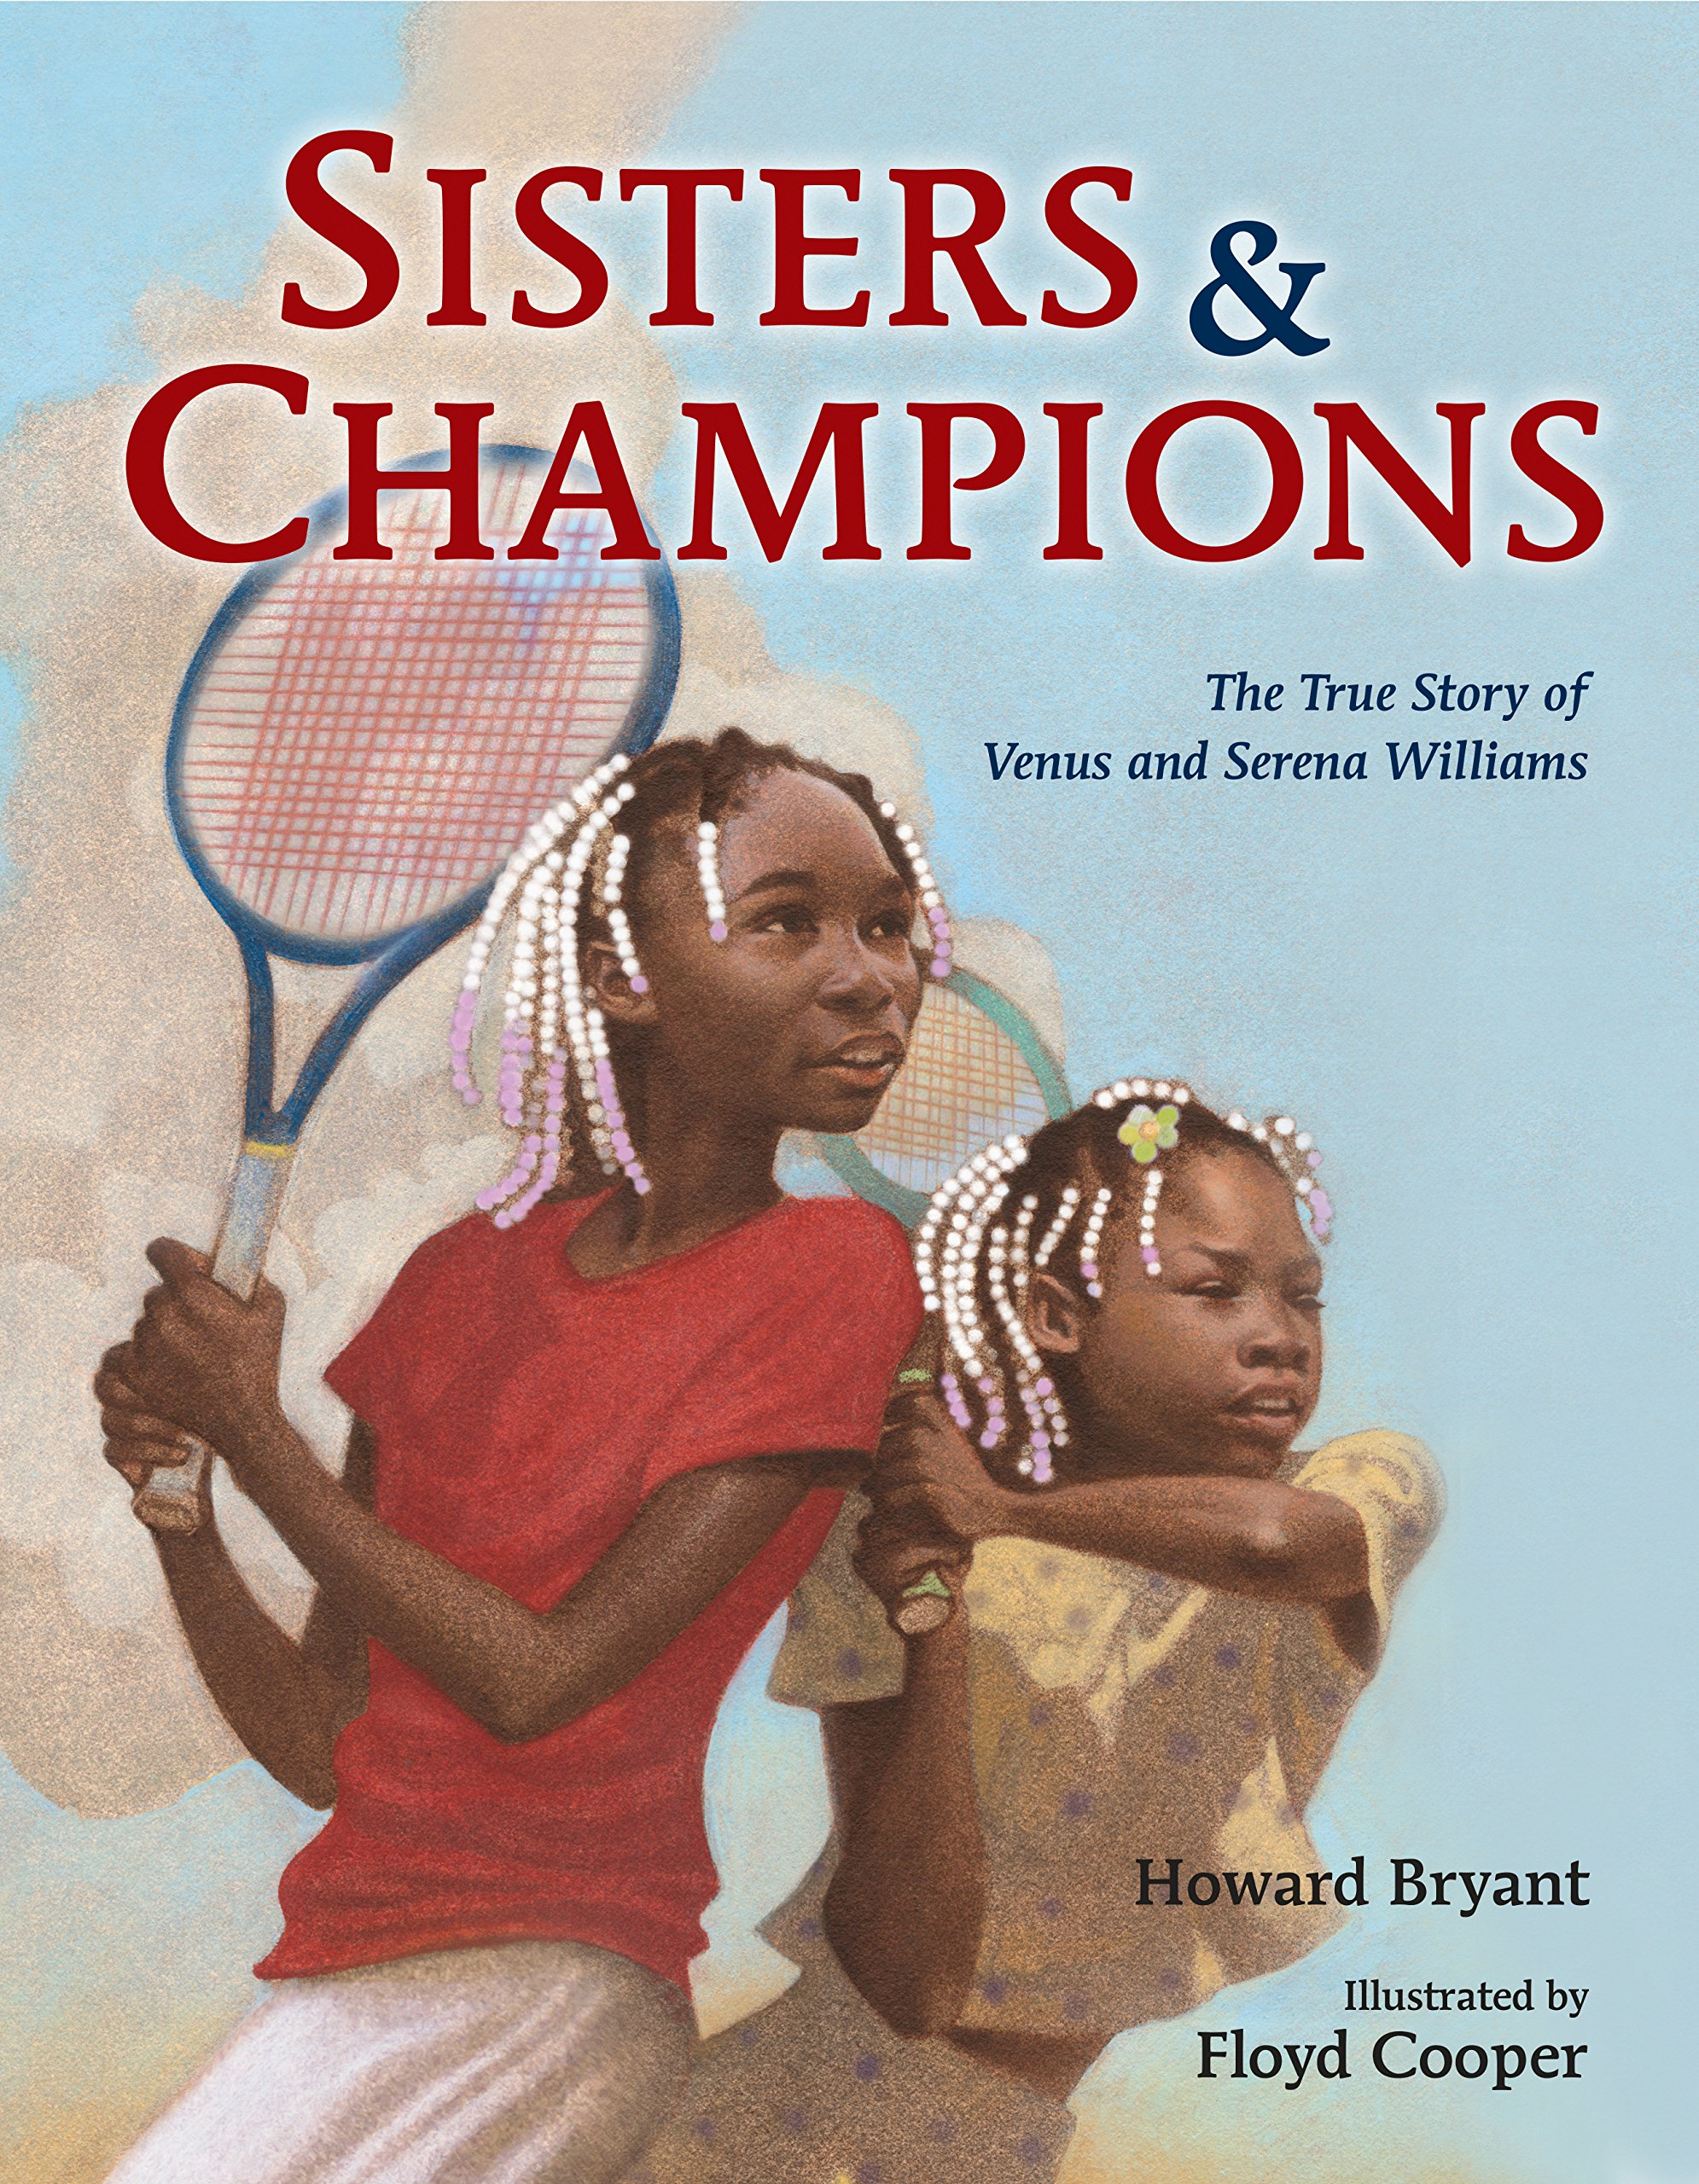 Image result for sisters & champions amazon